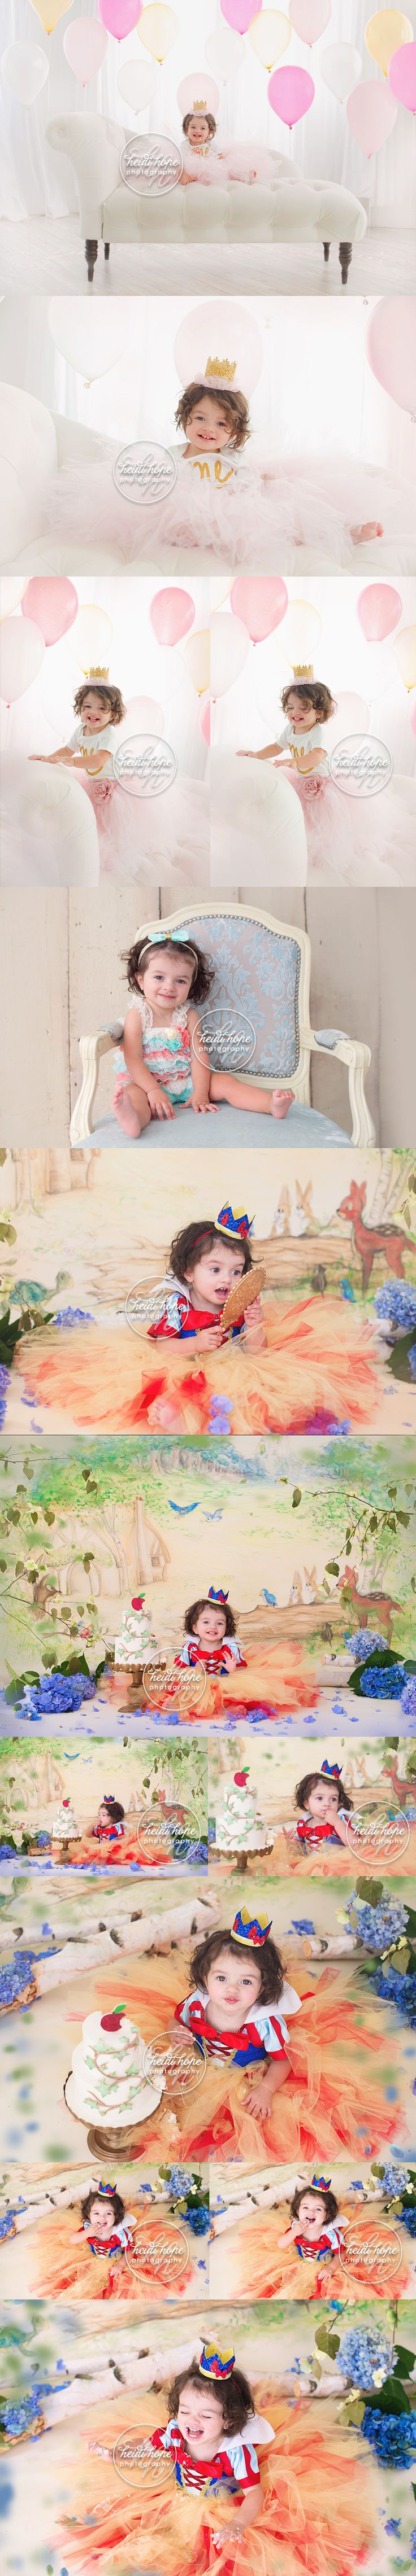 Have to pin this one!  One of my favorite sets for a perfect little snow white.  #cakesmash #birthday a-disney-snow-white-themed-first-birthday-cakesmash-set-for-a-princess